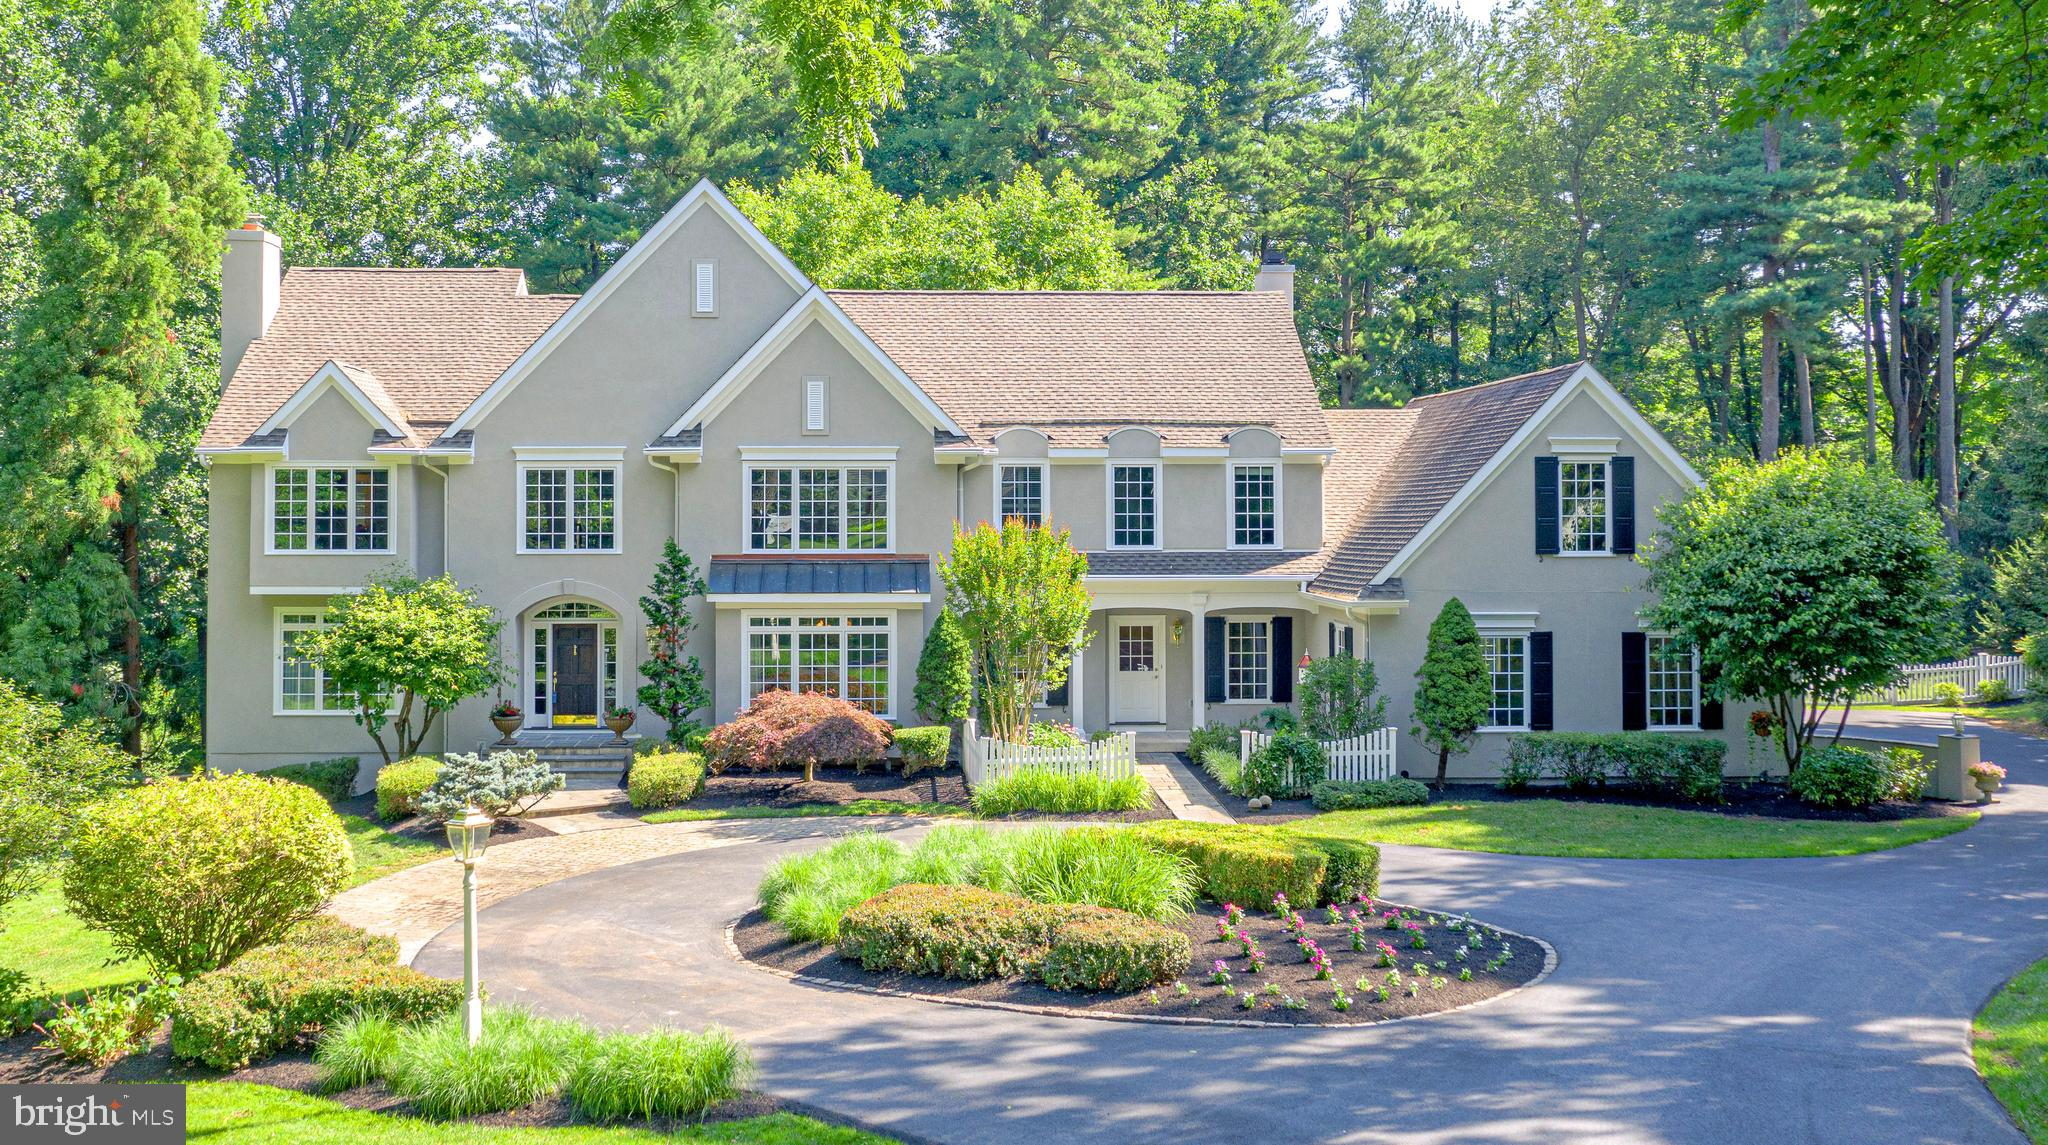 44 BLUE STONE DRIVE, CHADDS FORD, PA 19317